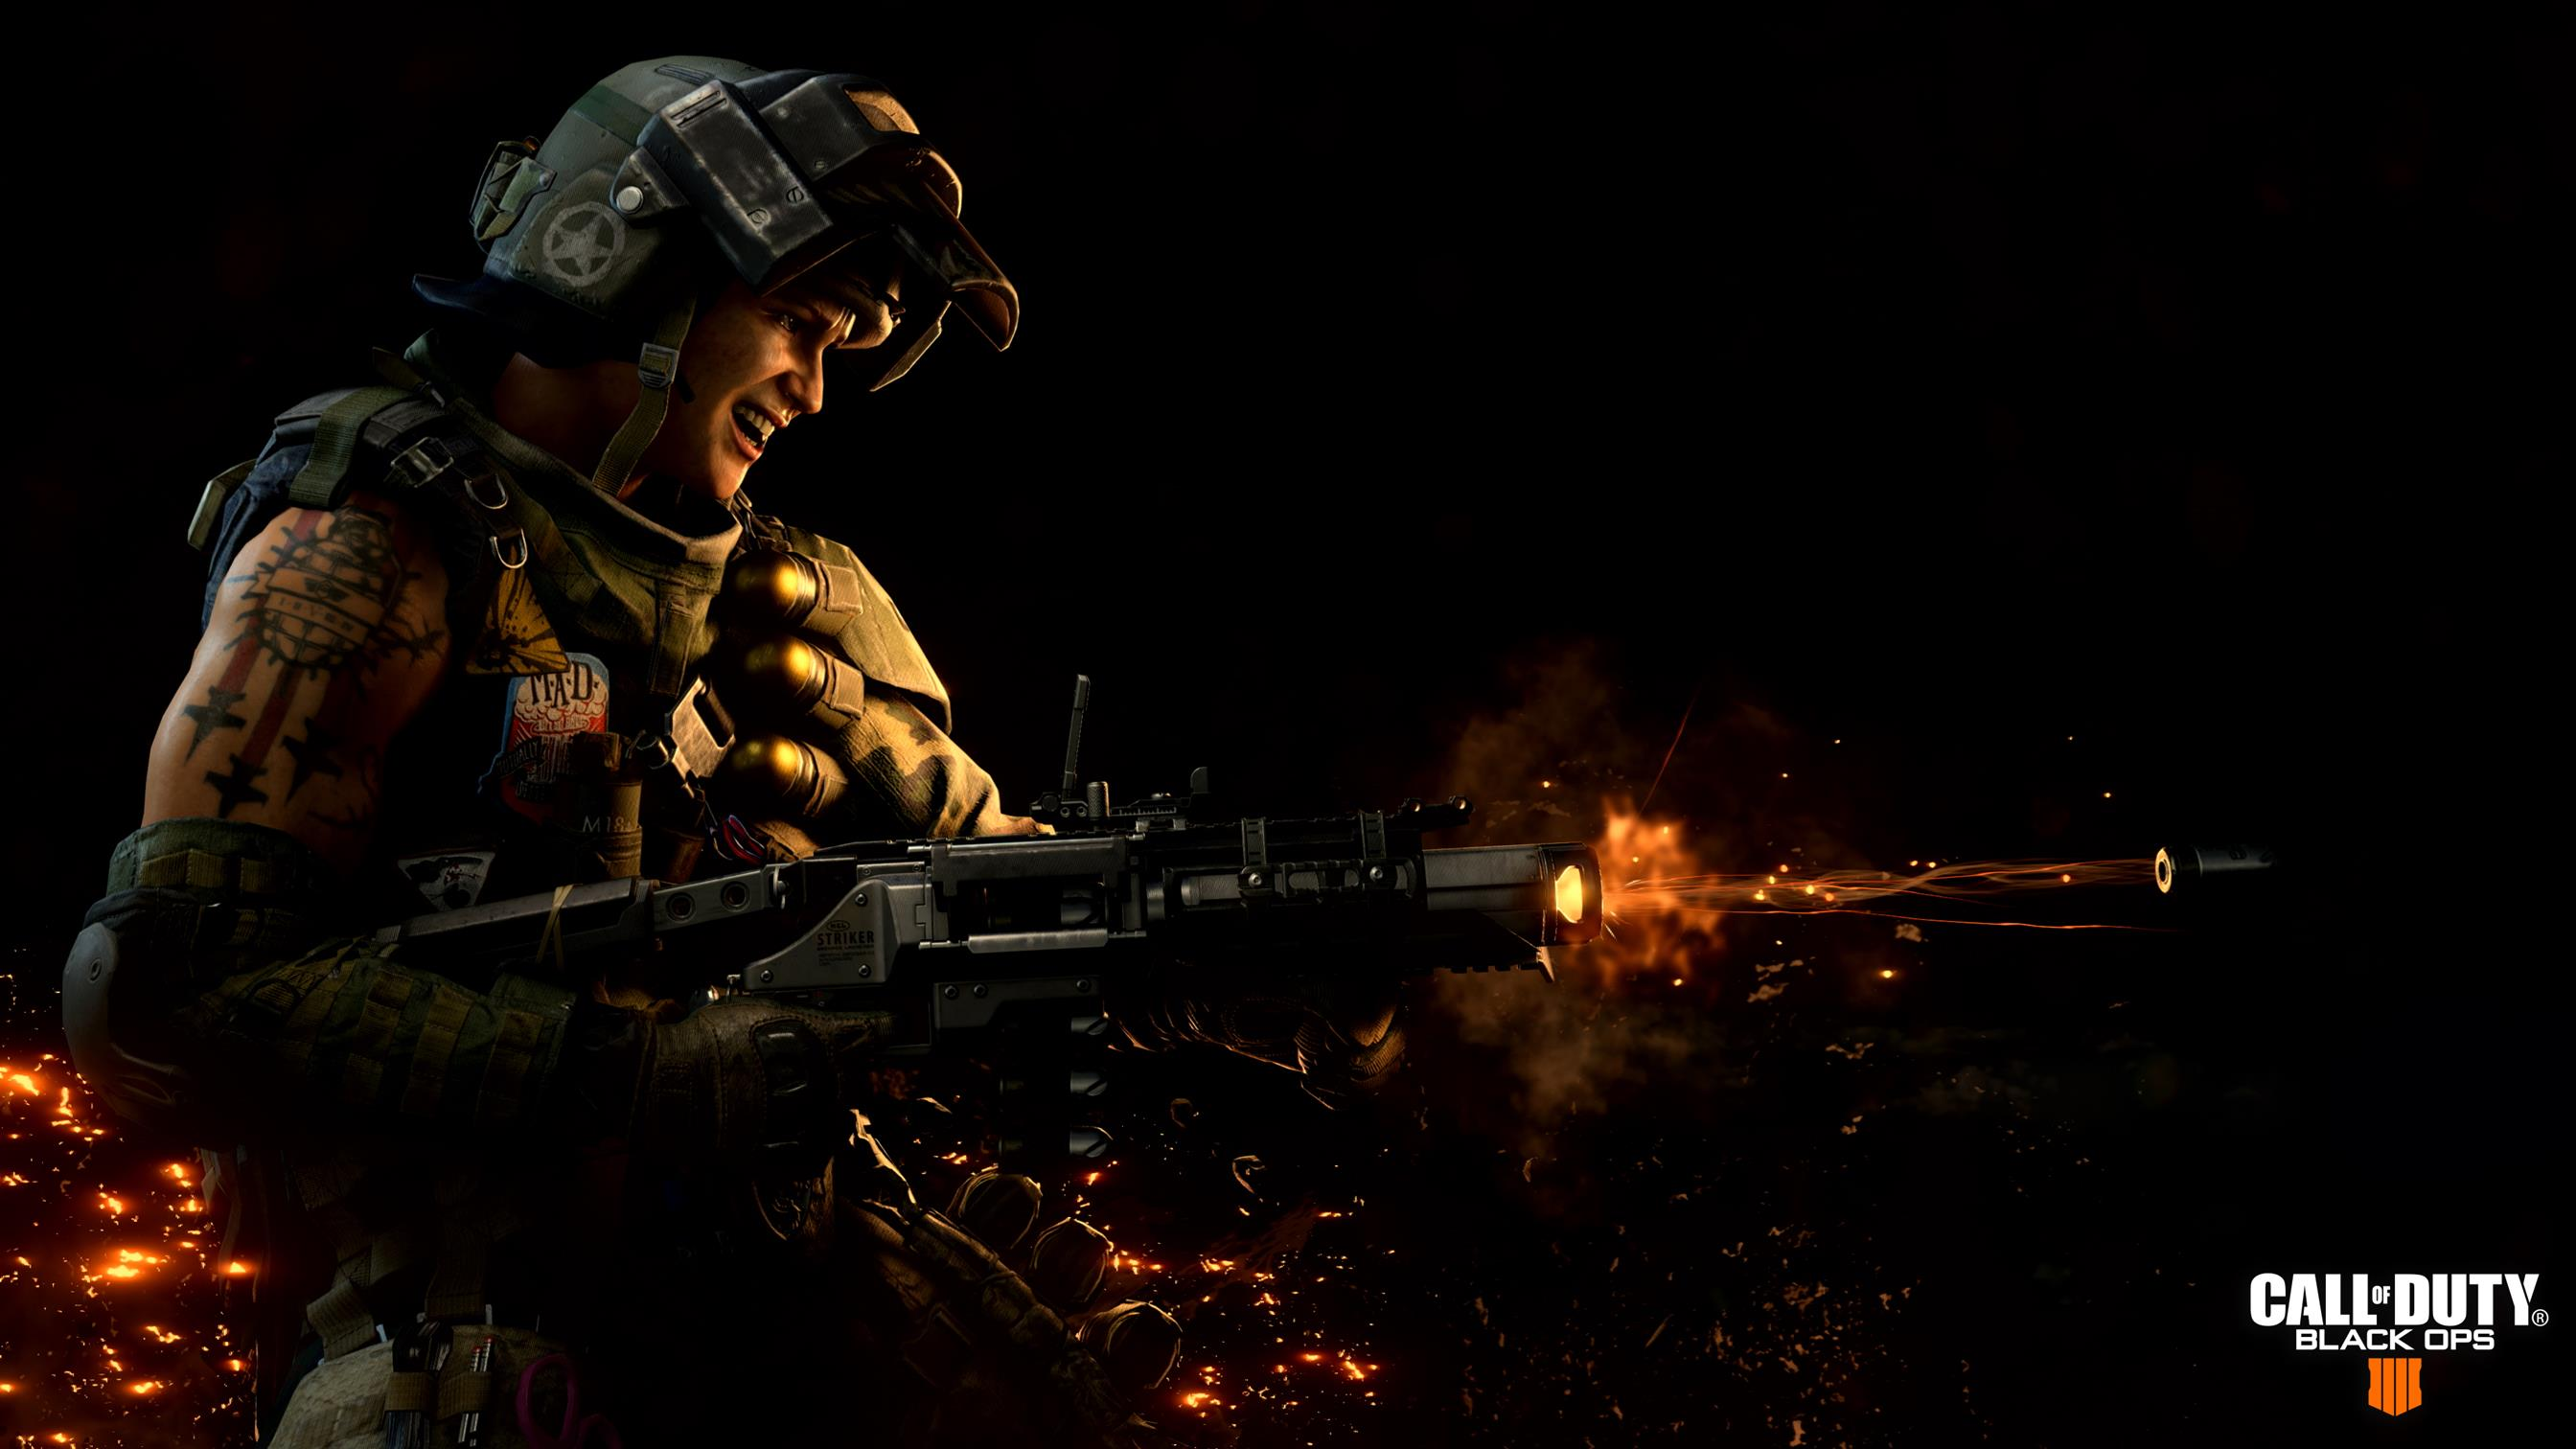 New COD: Black Ops 4 trailer finally shows off Blackout battle royale